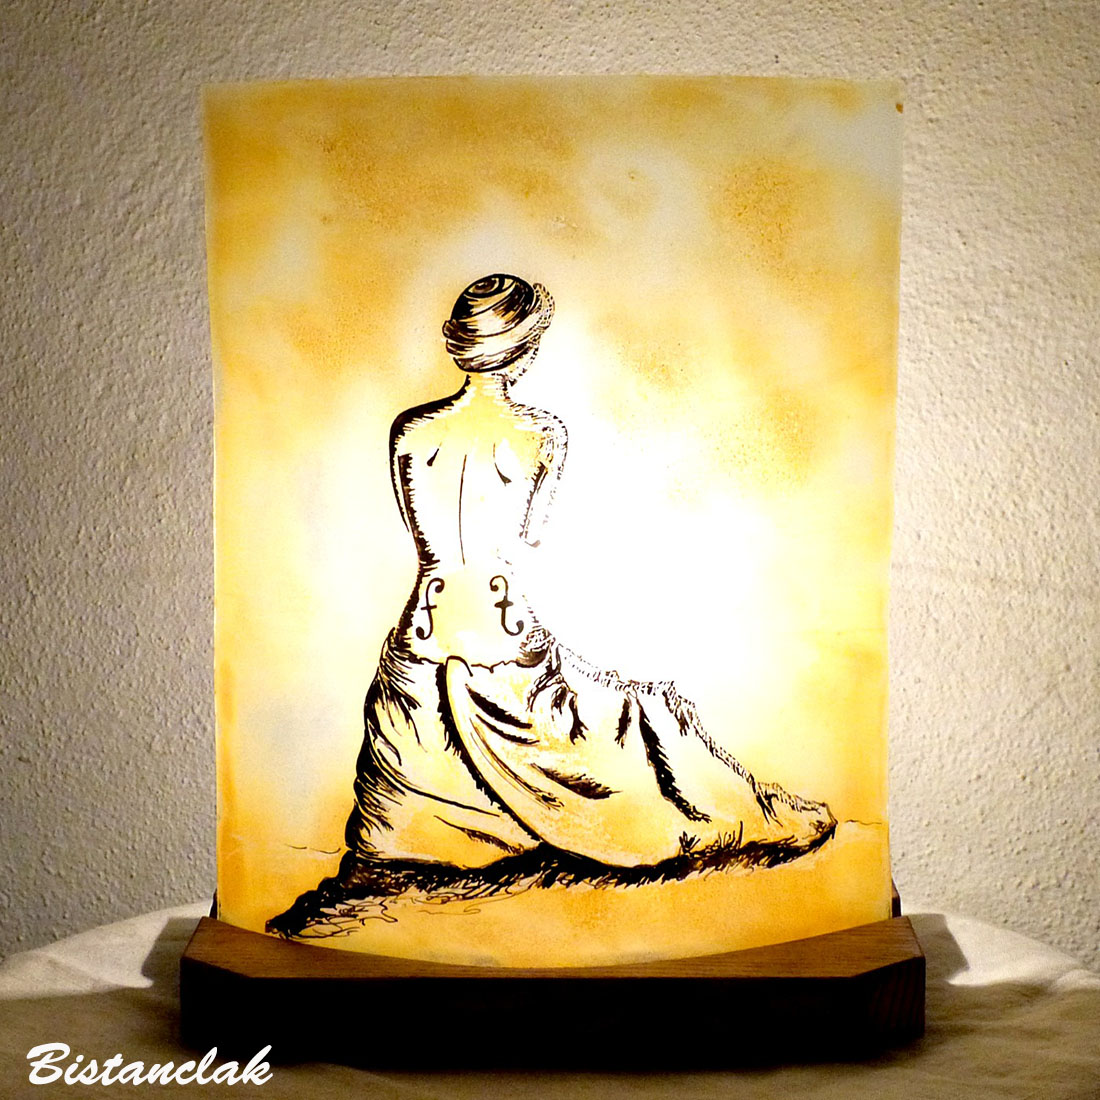 Lampe à poser La femme violon - Disponible en applique murale !